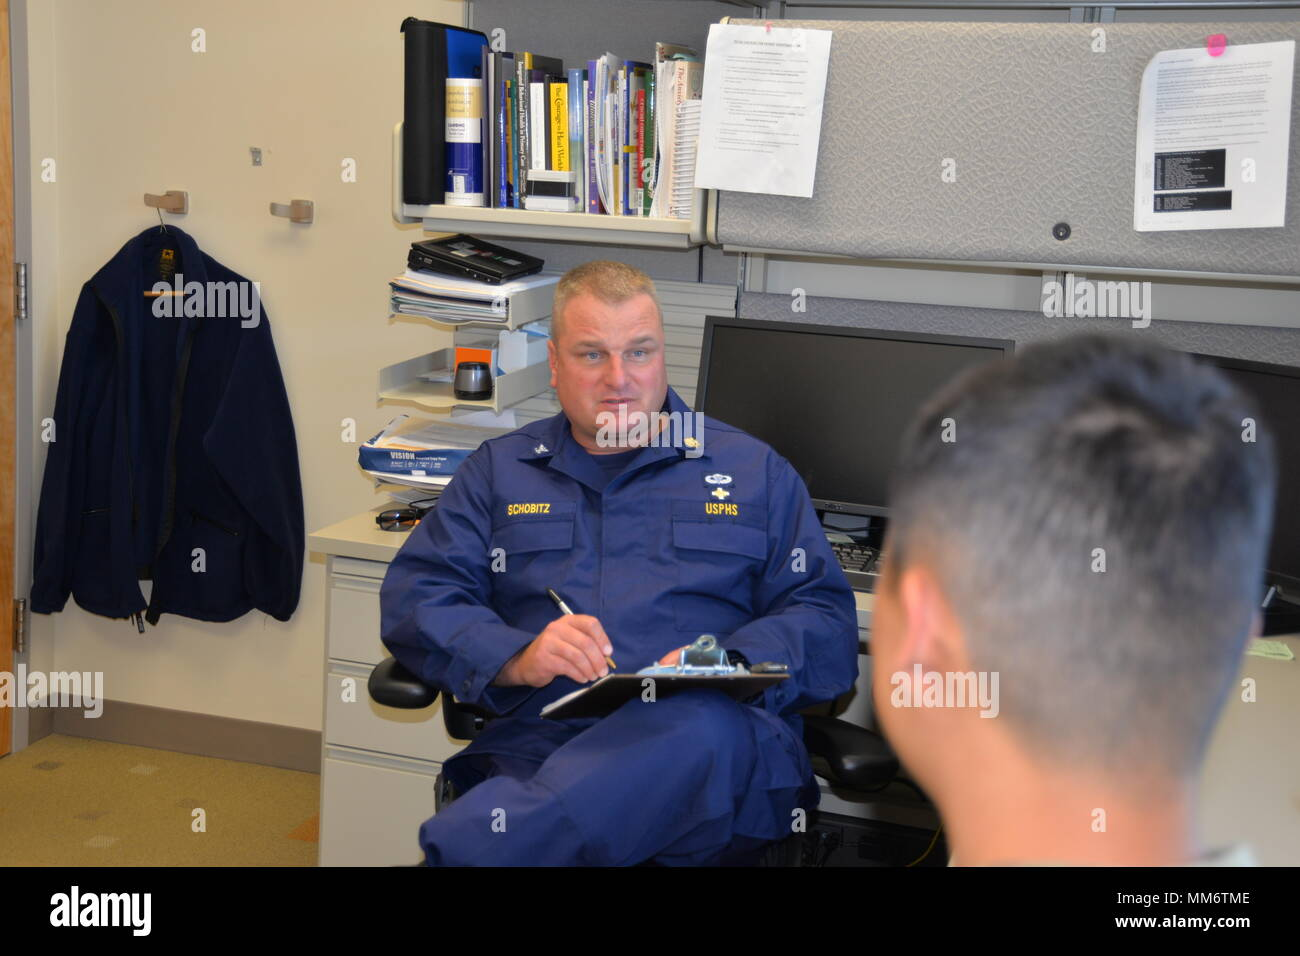 Capt. Richard Schobitz, chief of the Intensive Outpatient Behavioral Health Program and licensed clinical psychologist with the U.S. Public Health Service, talks to a Soldier in his office. The Intensive Outpatient Behavioral Health Program provides services and coping strategies to active duty members who have mental health issues, including anxiety, depression, post-traumatic stress disorder, or PTSD, and who have thoughts of committing suicide. (U.S. Air Force Photo by David DeKunder) - Stock Image